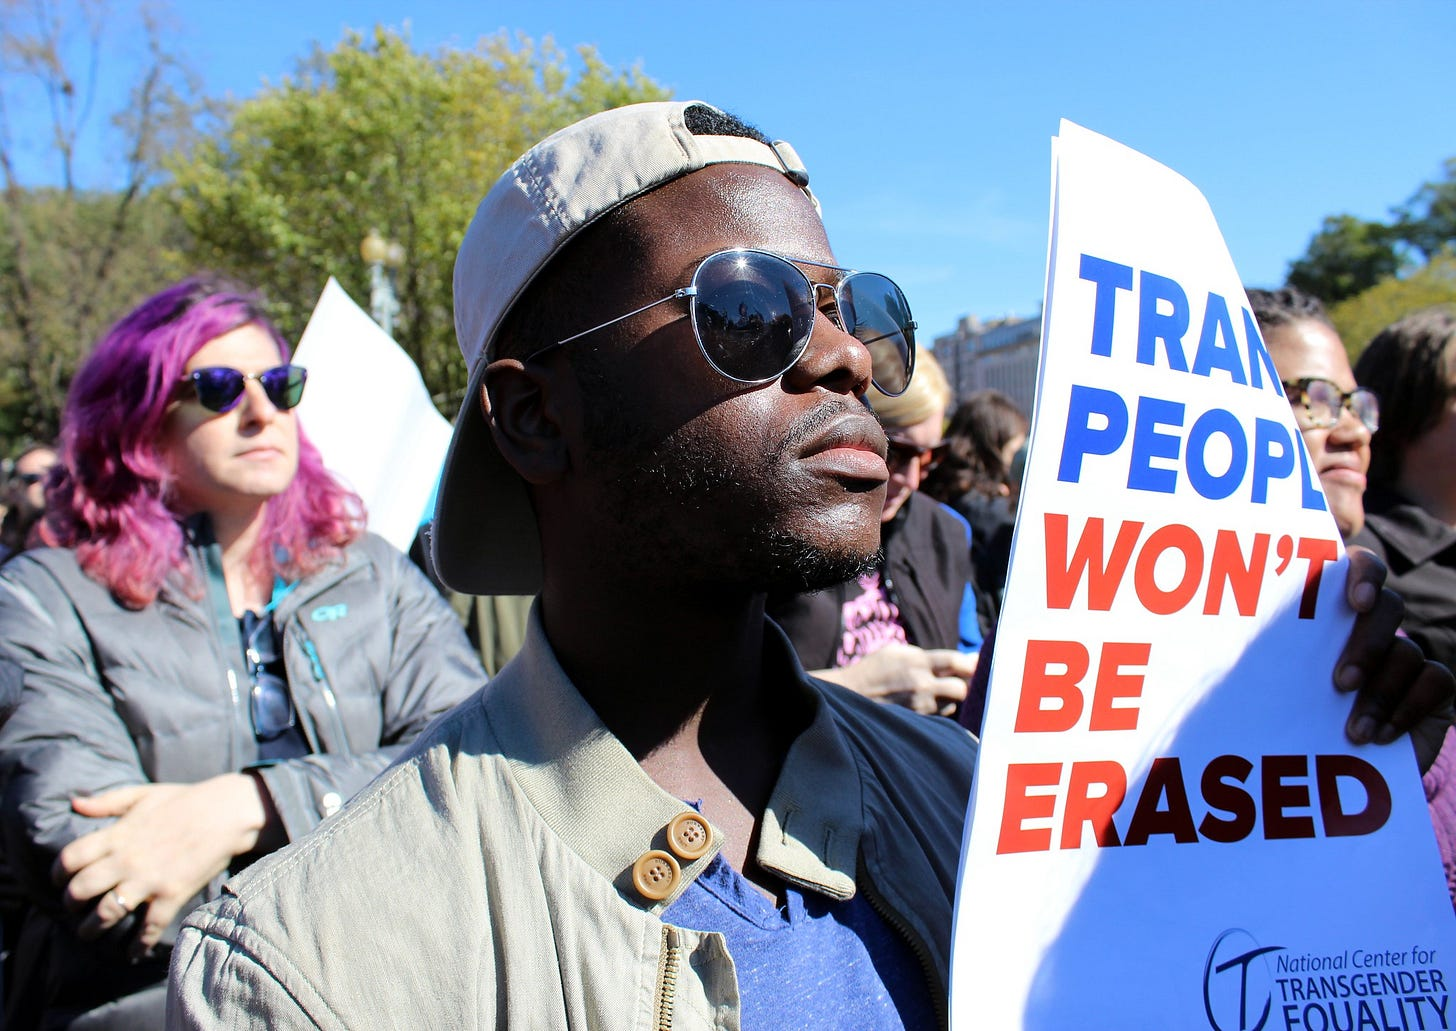 National Center for Transgender Equality TRANSGENDER RIGHTS RALLY in front of the White House at 1600 Pennsylvania Avenue, NW, Washington DC on Monday afternoon, 22 October 2018 by Elvert Barnes Protest Photography